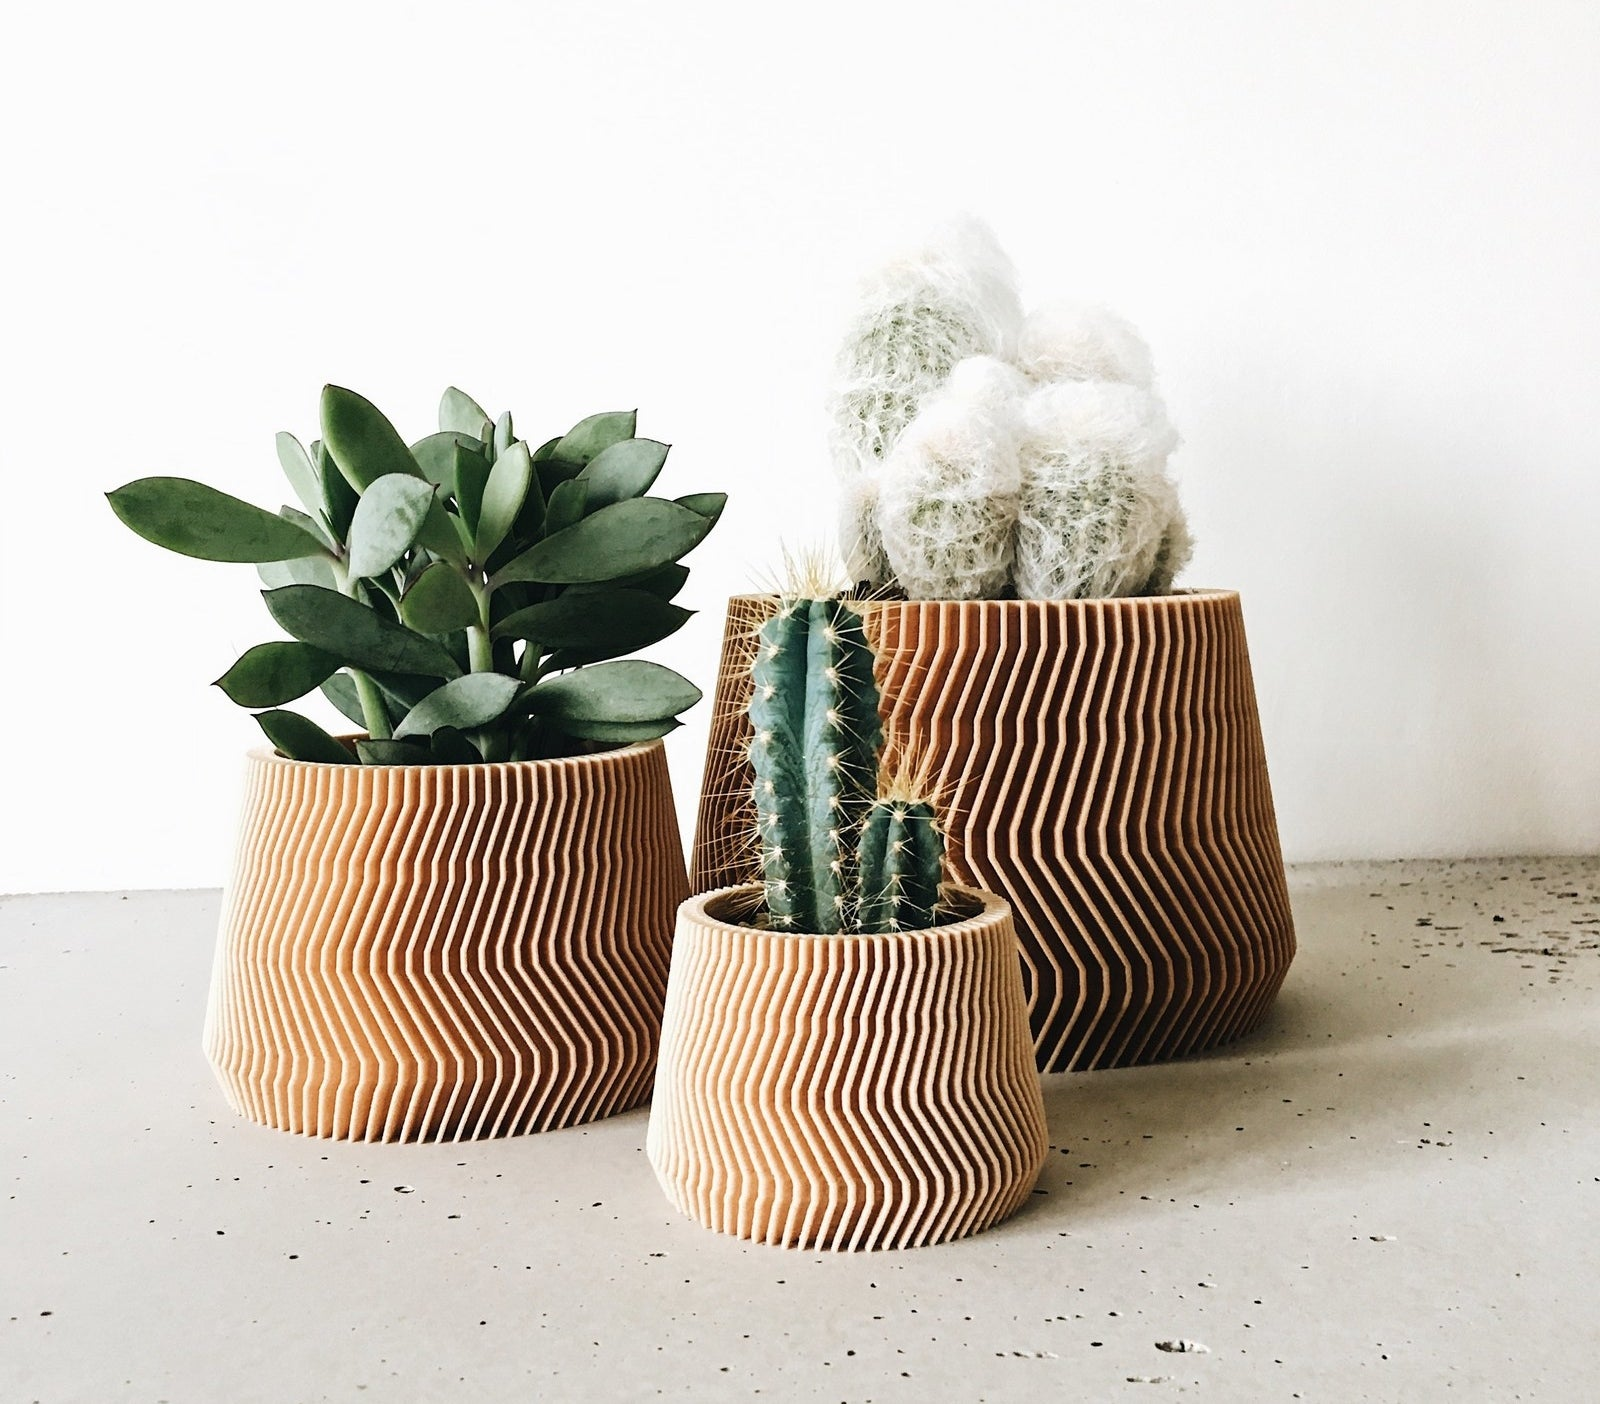 Wavy recycled-wood planters with succulents